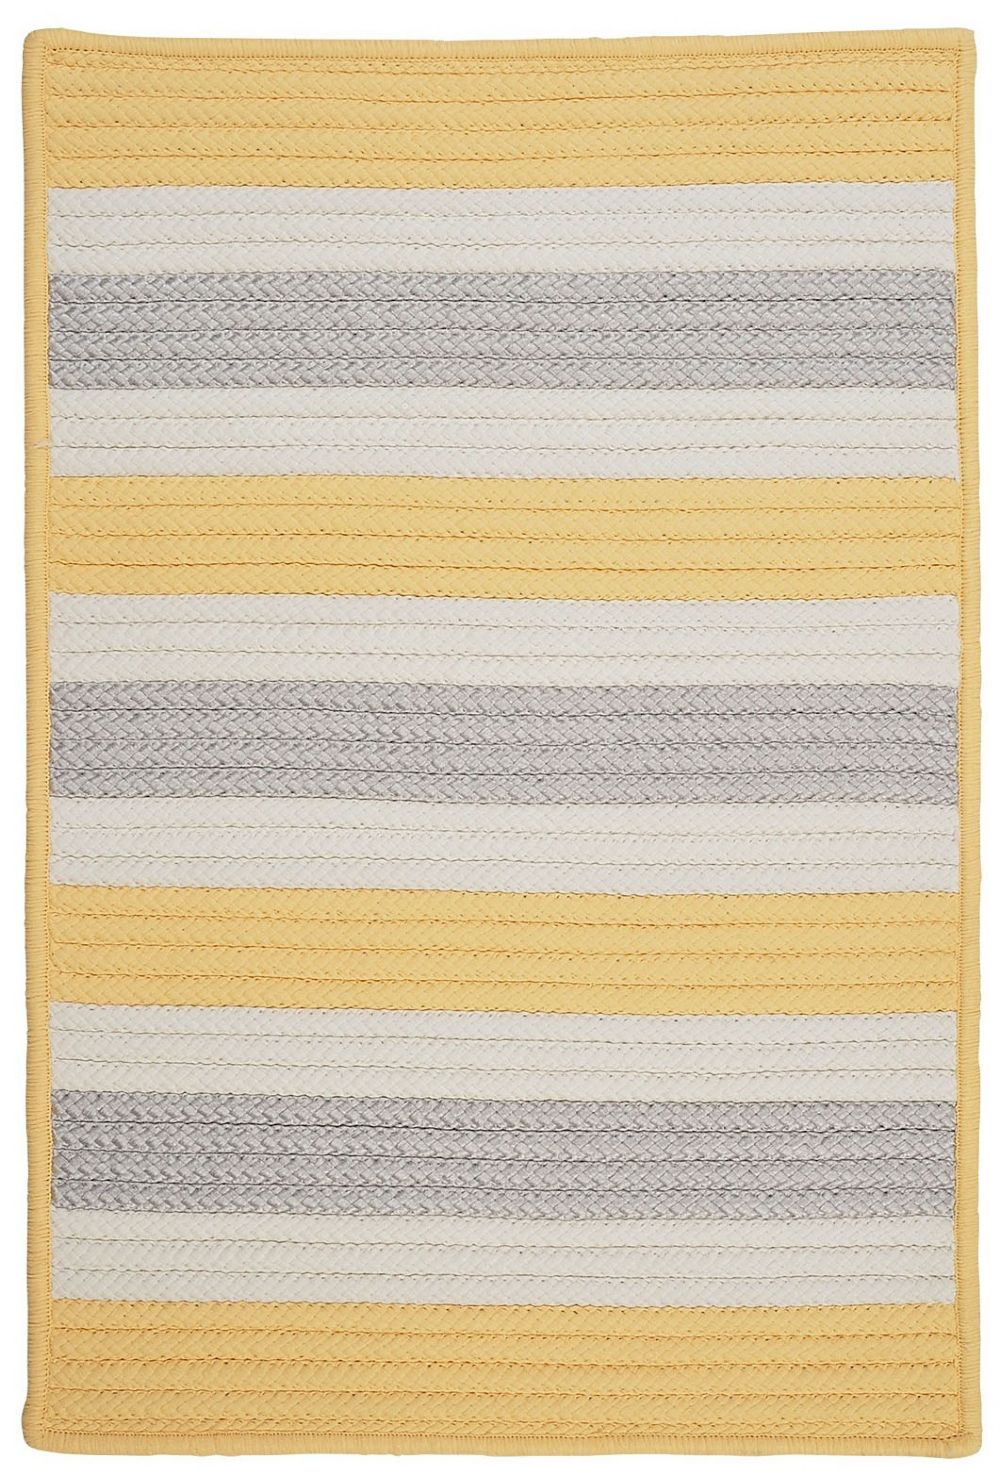 colonial mills stripe it braided area rug collection